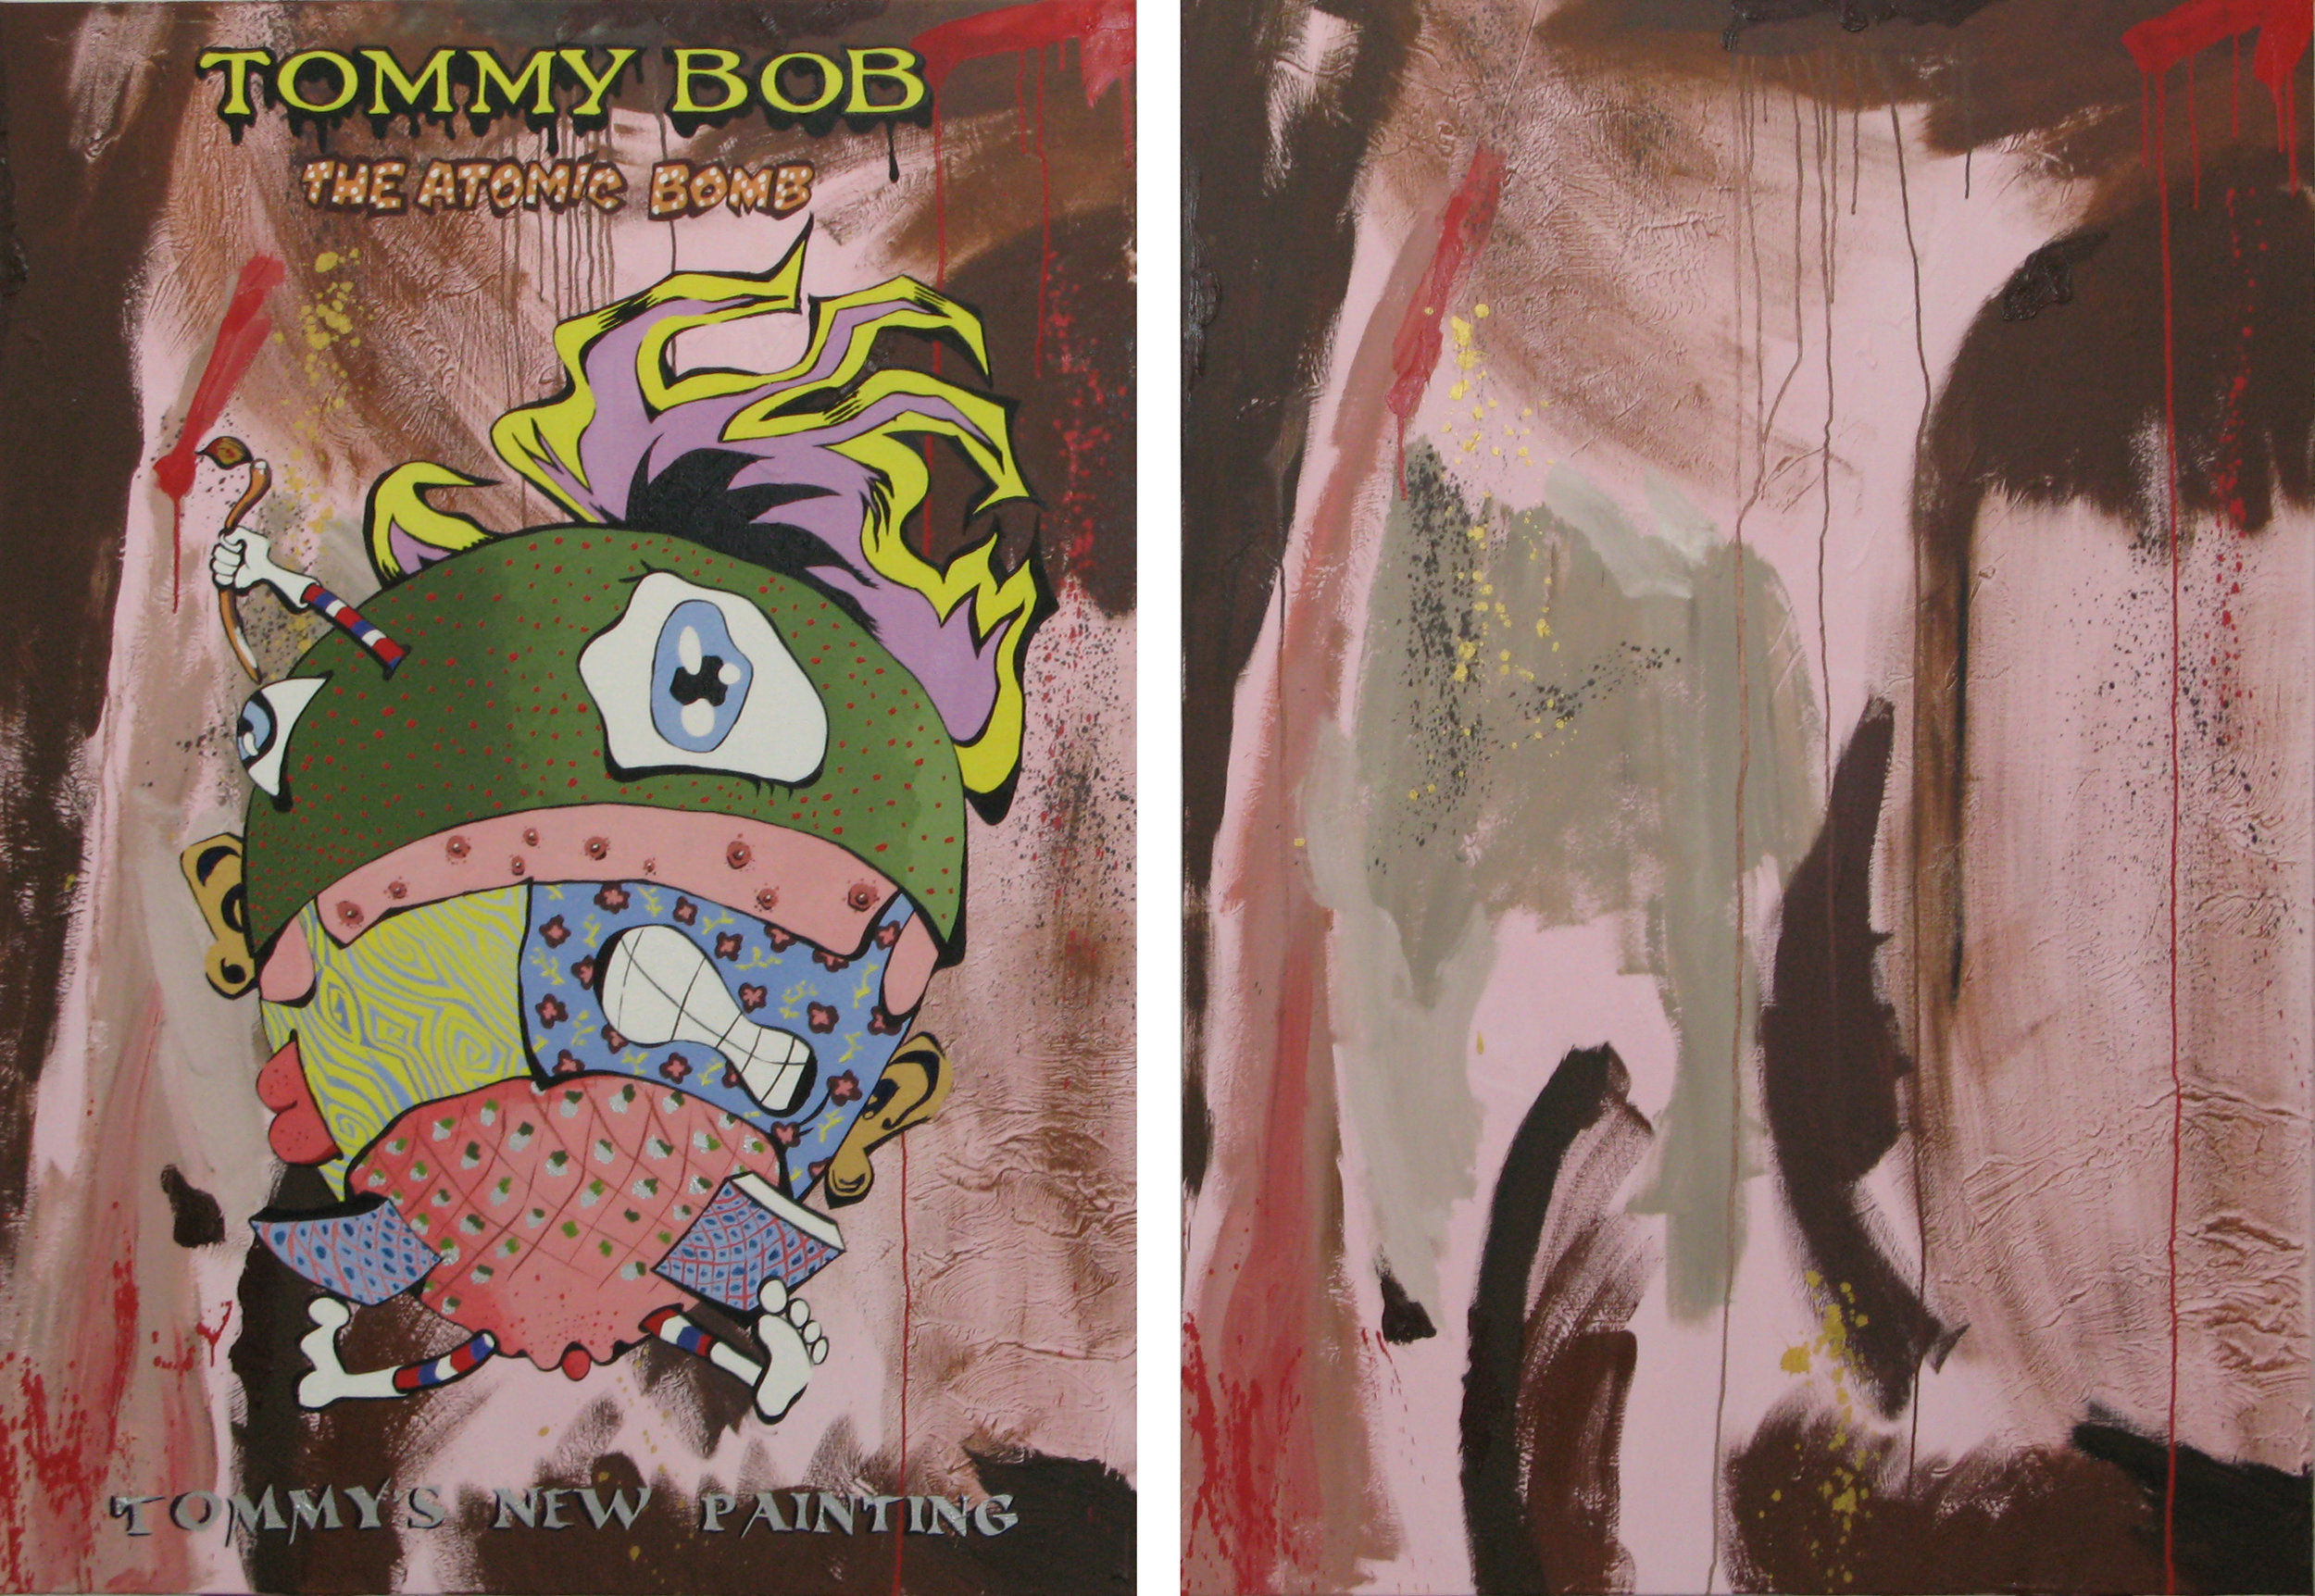 Tommy Bob the Atomic Bomb: Tommy's New Painting , oil on canvas, 2007